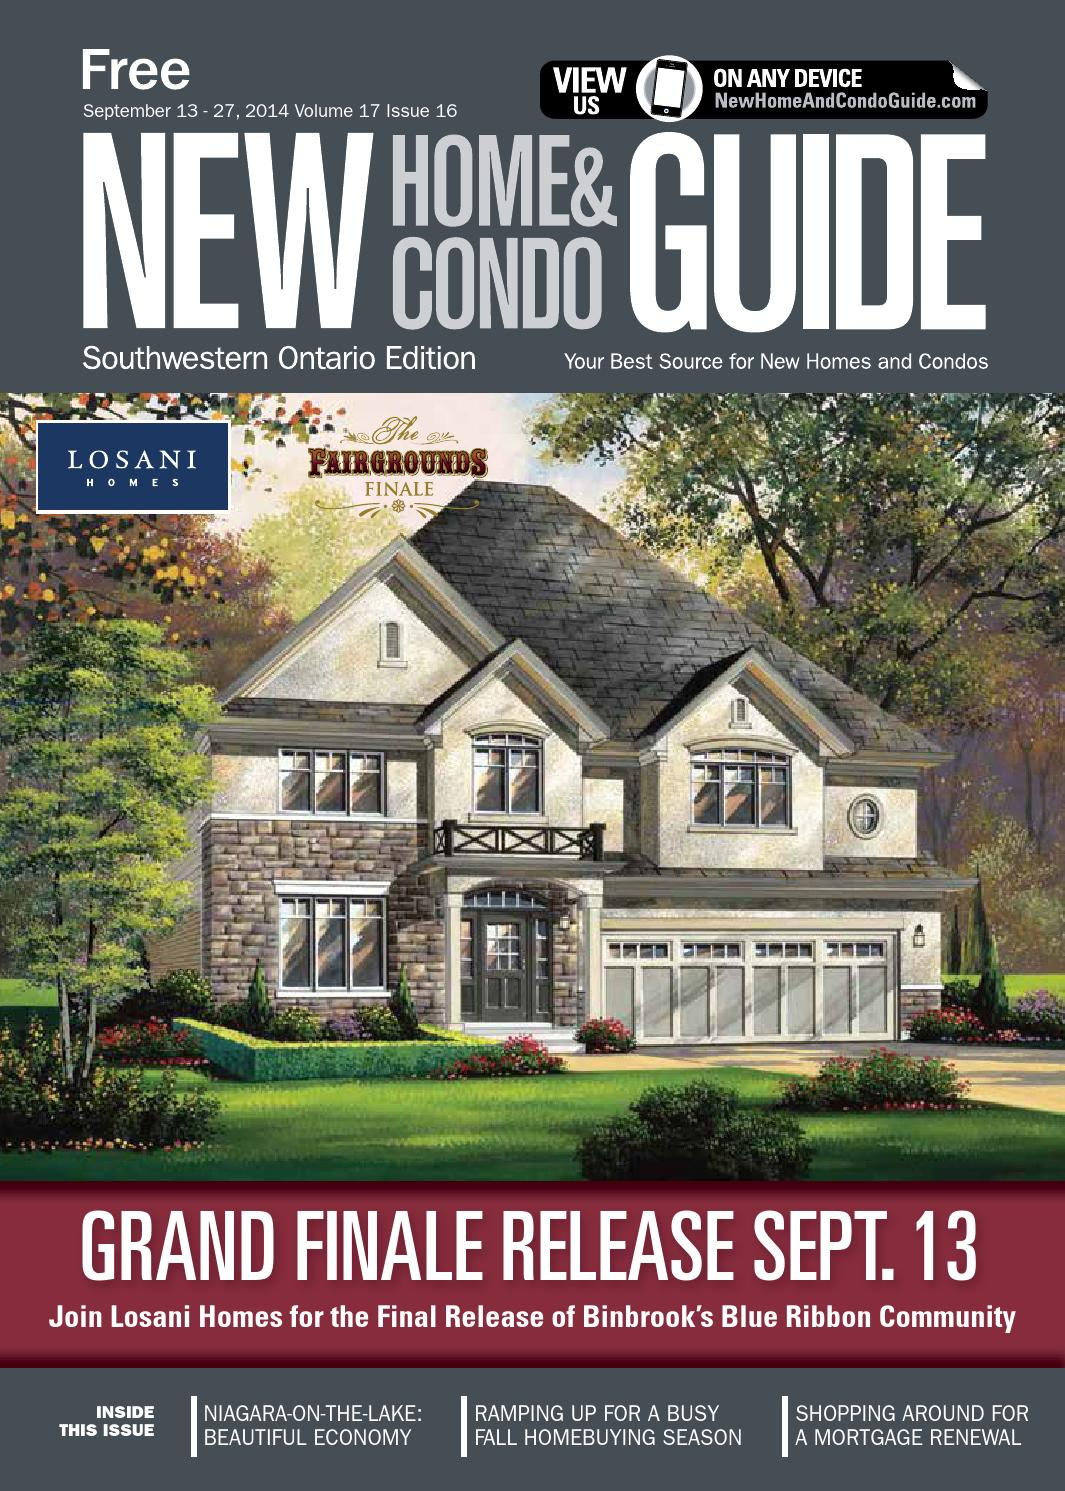 Ecoschools gt home gt resources and guides gt charts and posters - Southwestern Ontario New Home And Condo Guide Sept 13 2014 By Nexthome Issuu